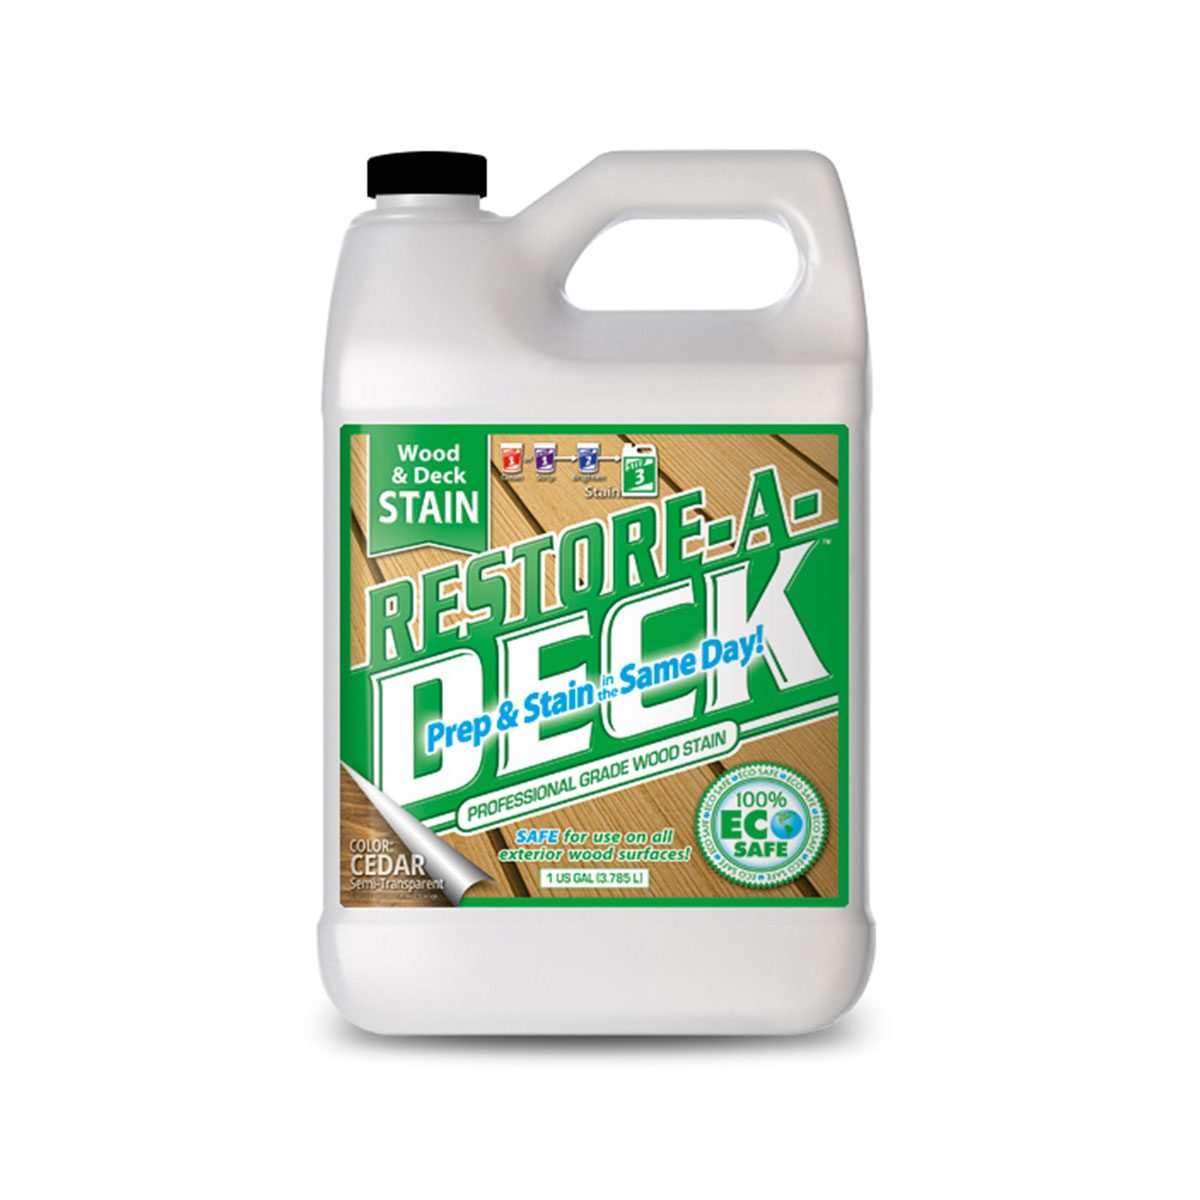 Jug of Restore-a-Deck stain